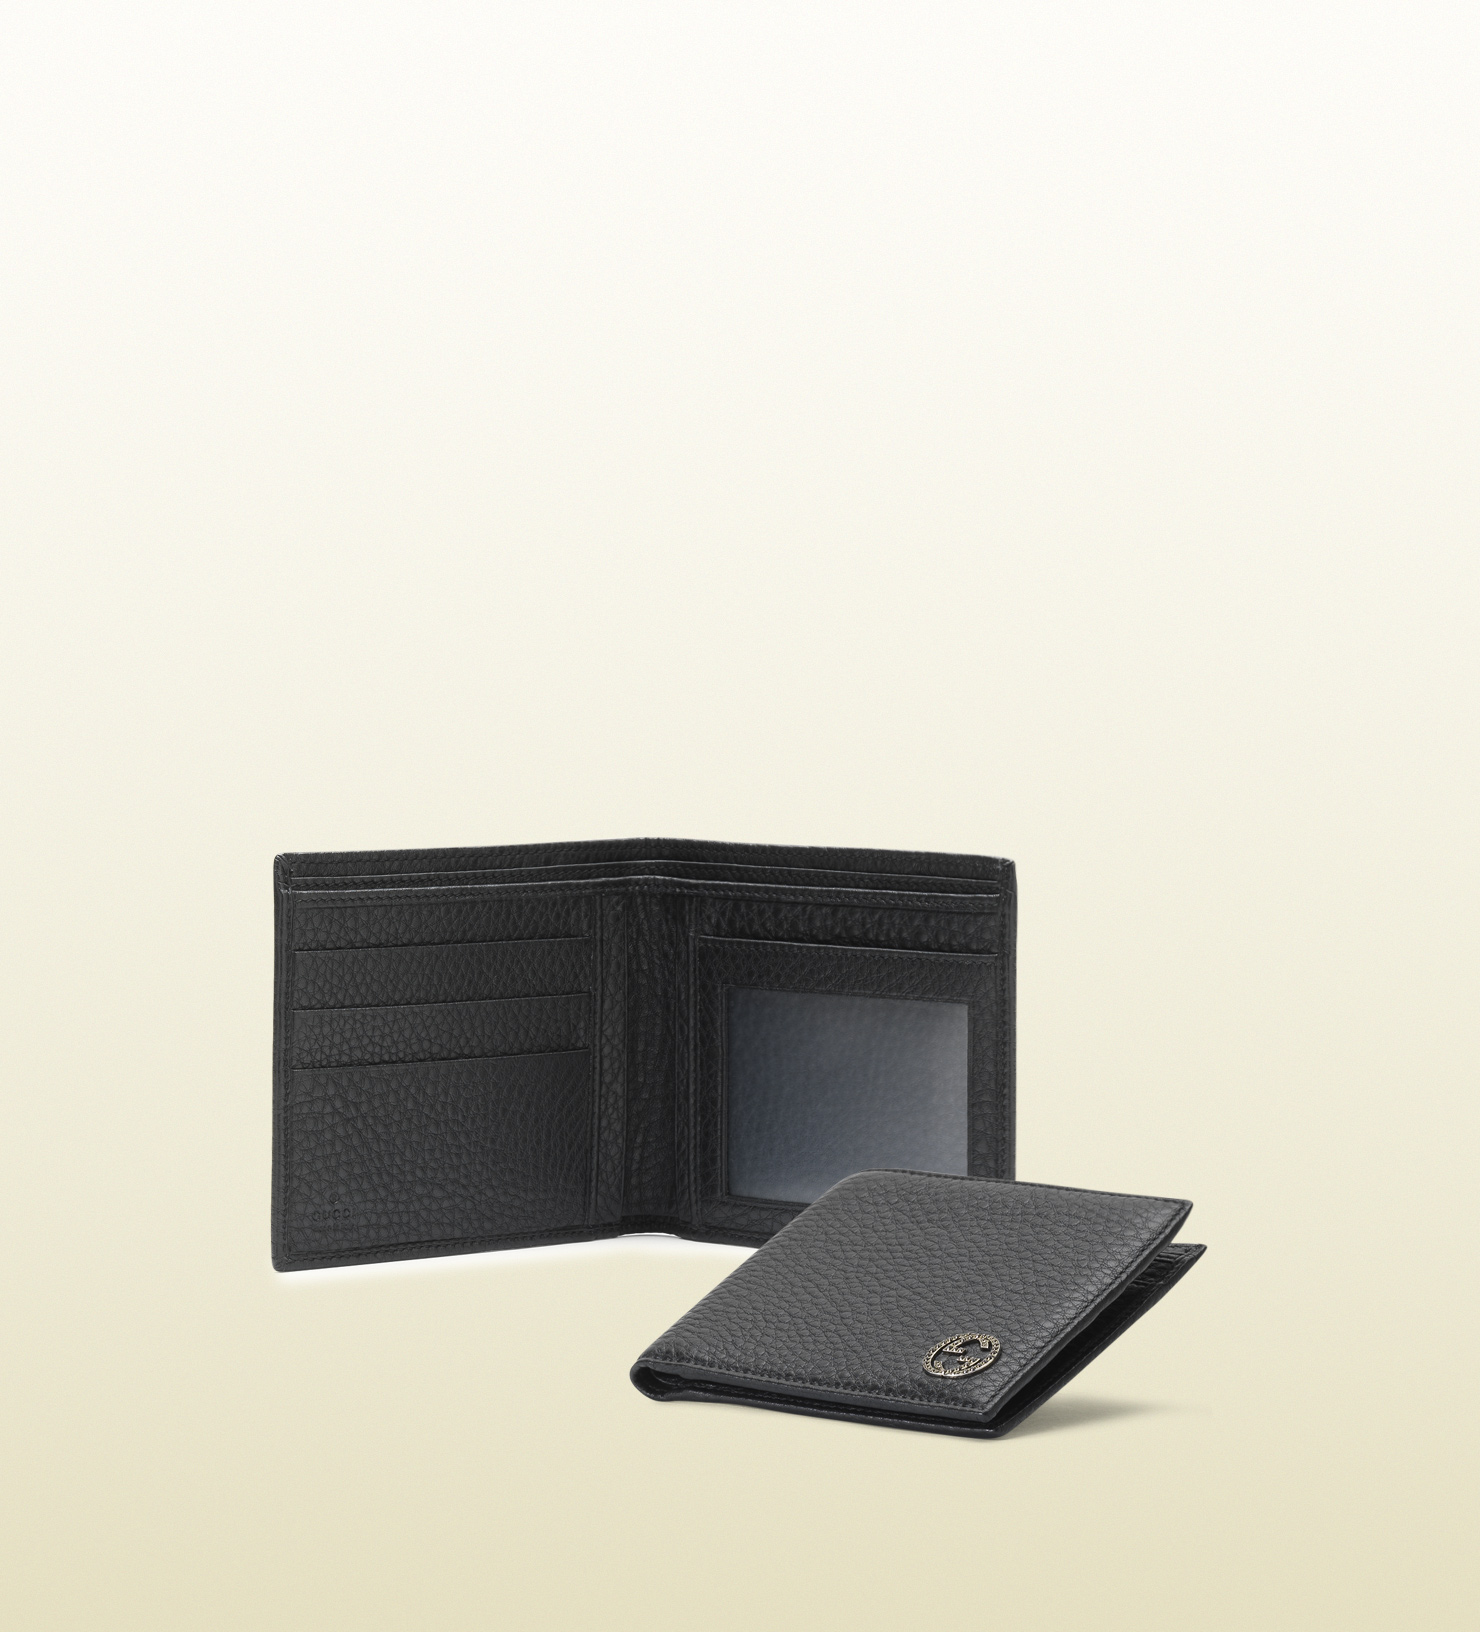 f8da0bf1ff54 Gucci Black Leather Bifold Wallet with Id Window in Black for Men - Lyst